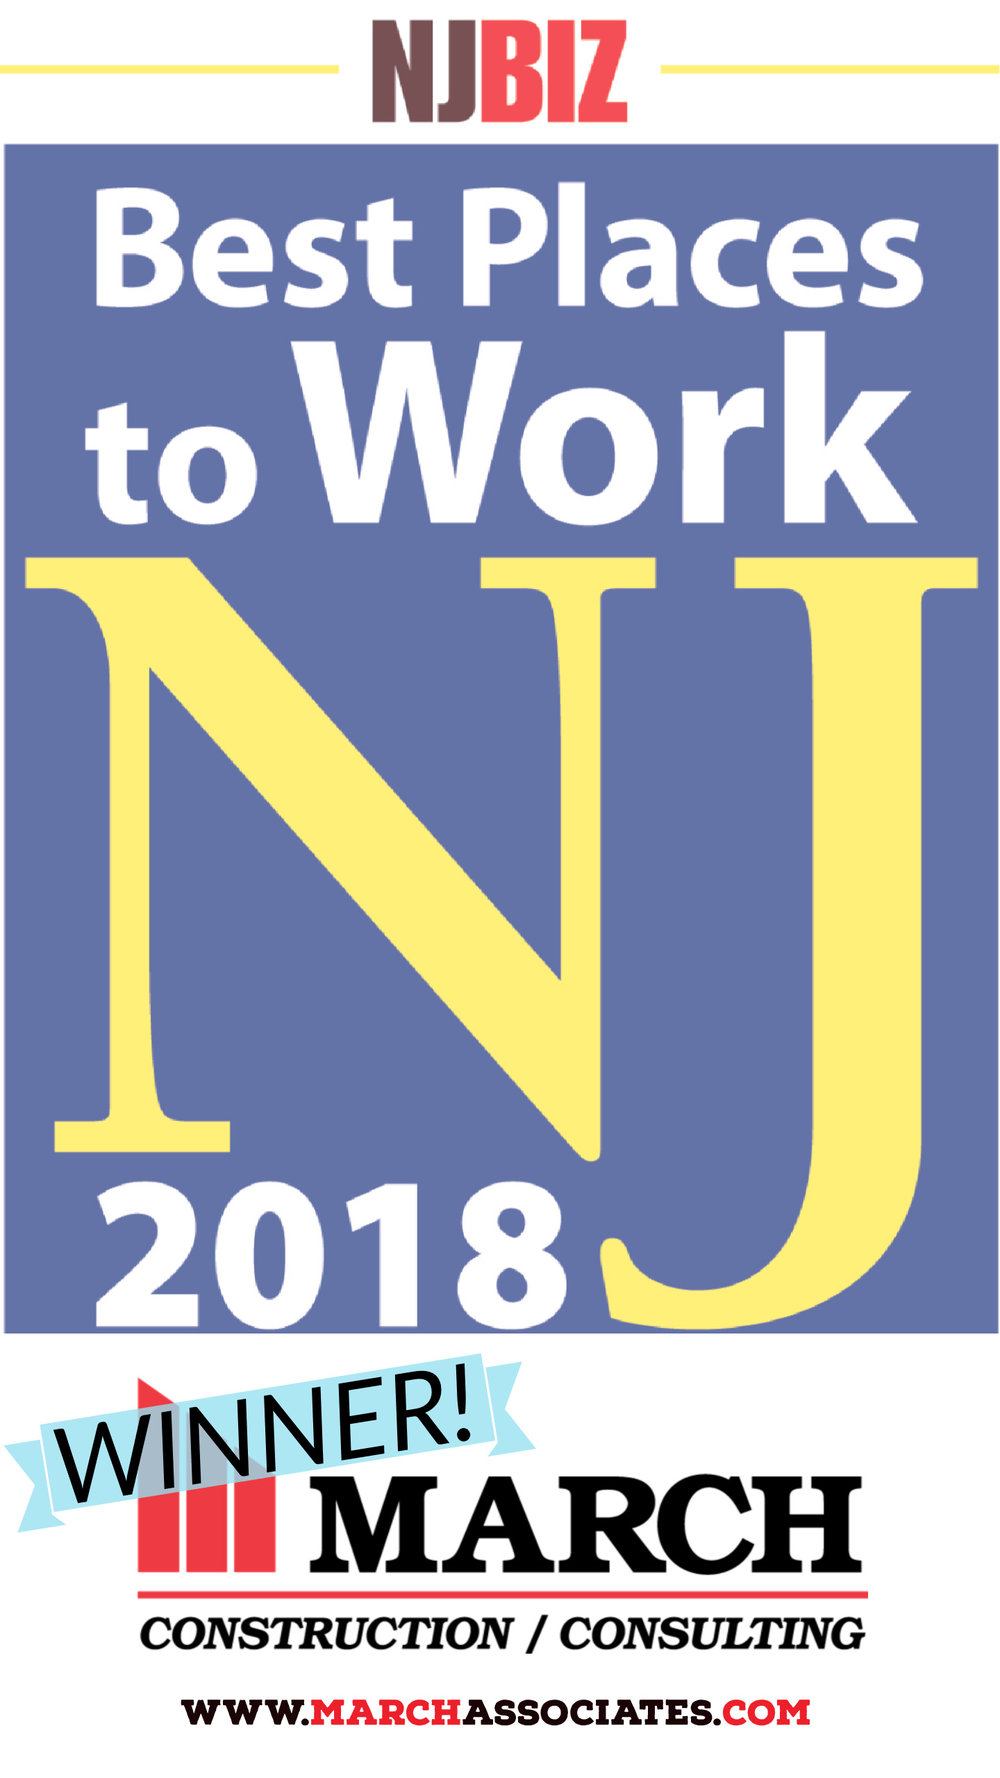 March Construction rated one of the Best places to work in NJ